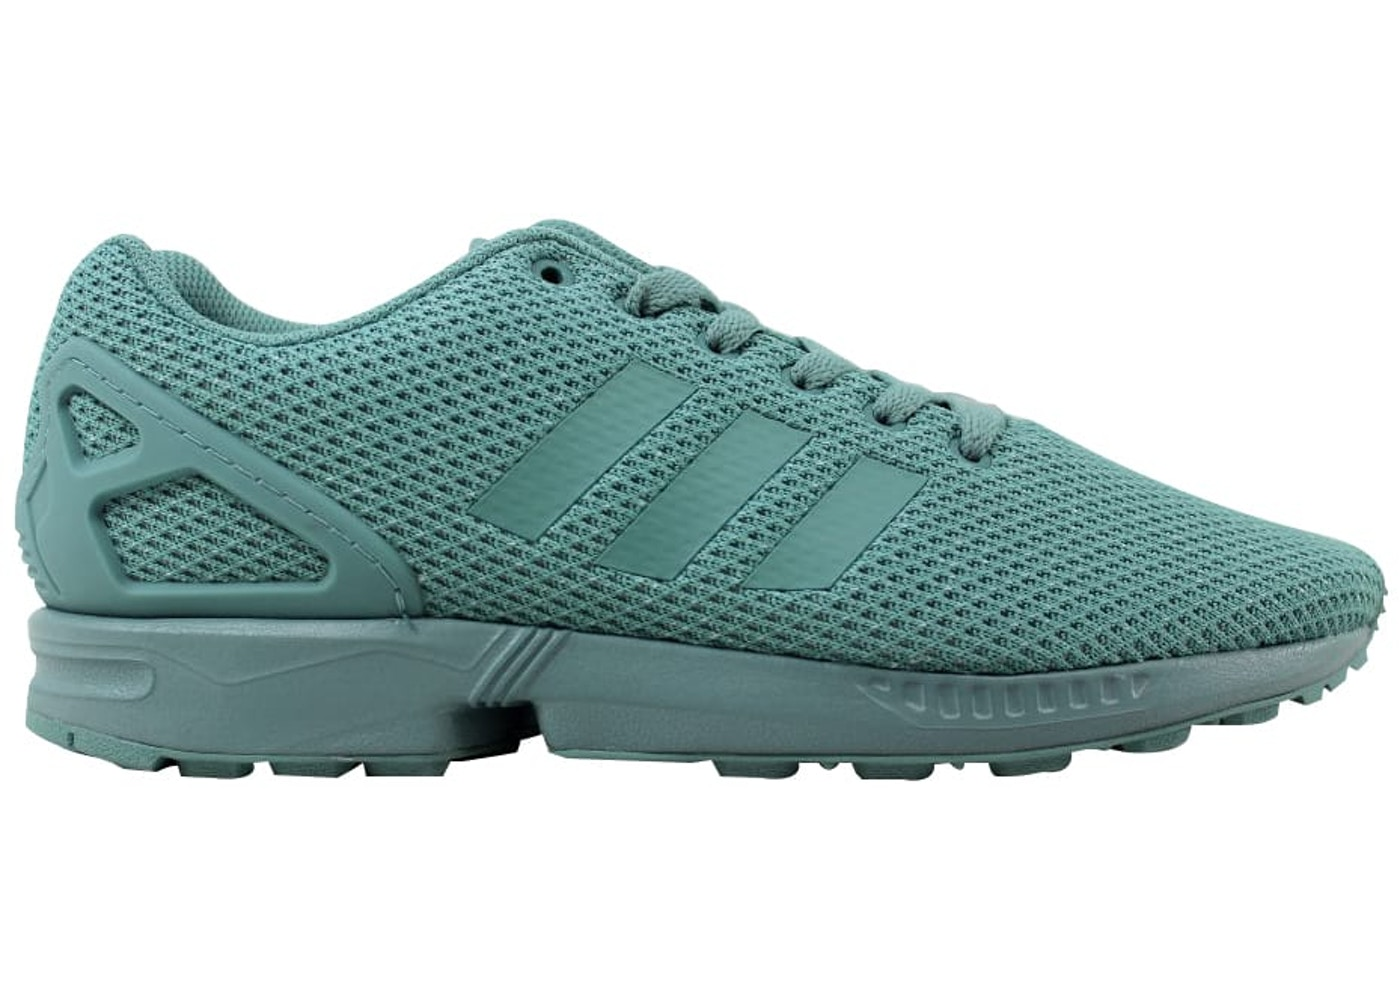 newest a56e1 6f809 adidas ZX Flux Mint Green - BB2762